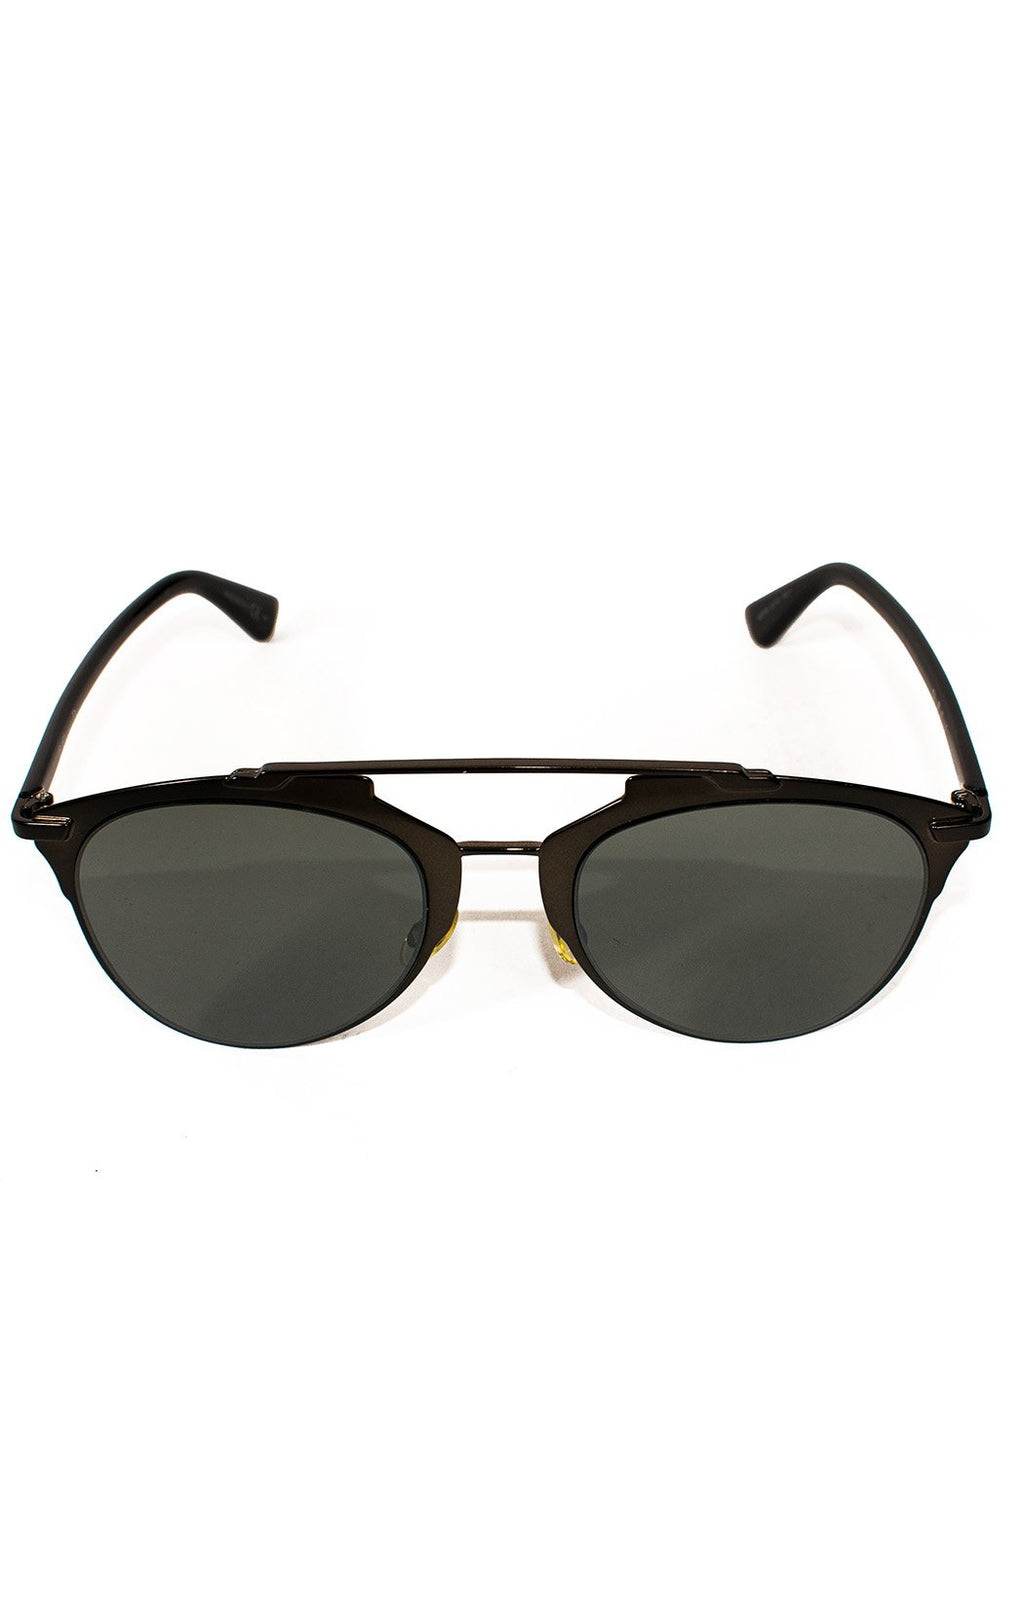 "Front view of CHRISTIAN DIOR  Sunglasses  Size: H 2"", W 5"""